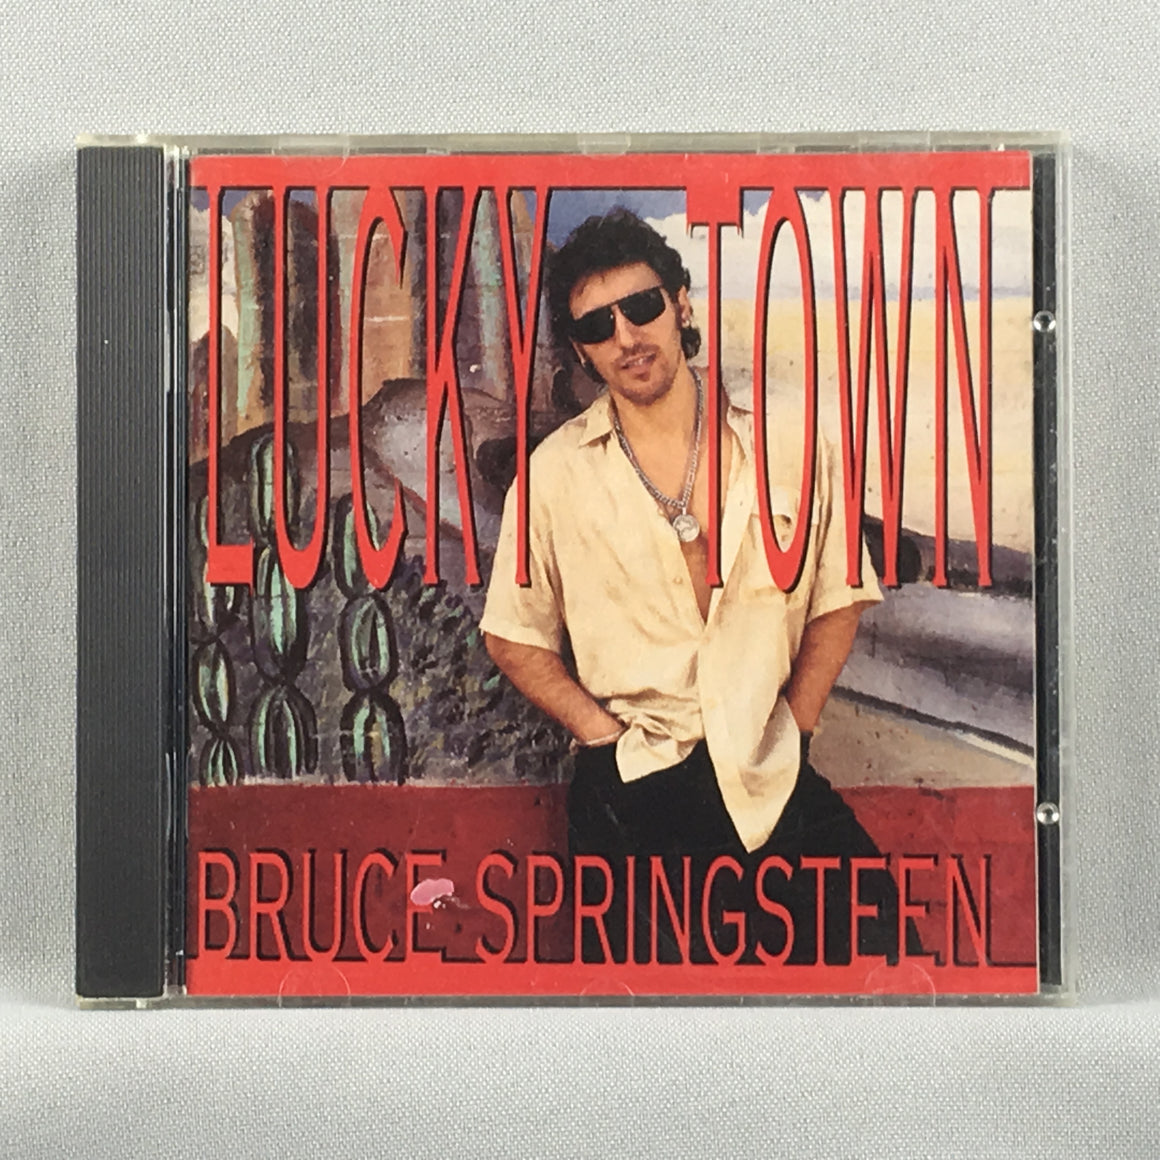 Bruce Springsteen ‎– Lucky Town - Orig Press Used CD VG+ CK 53001